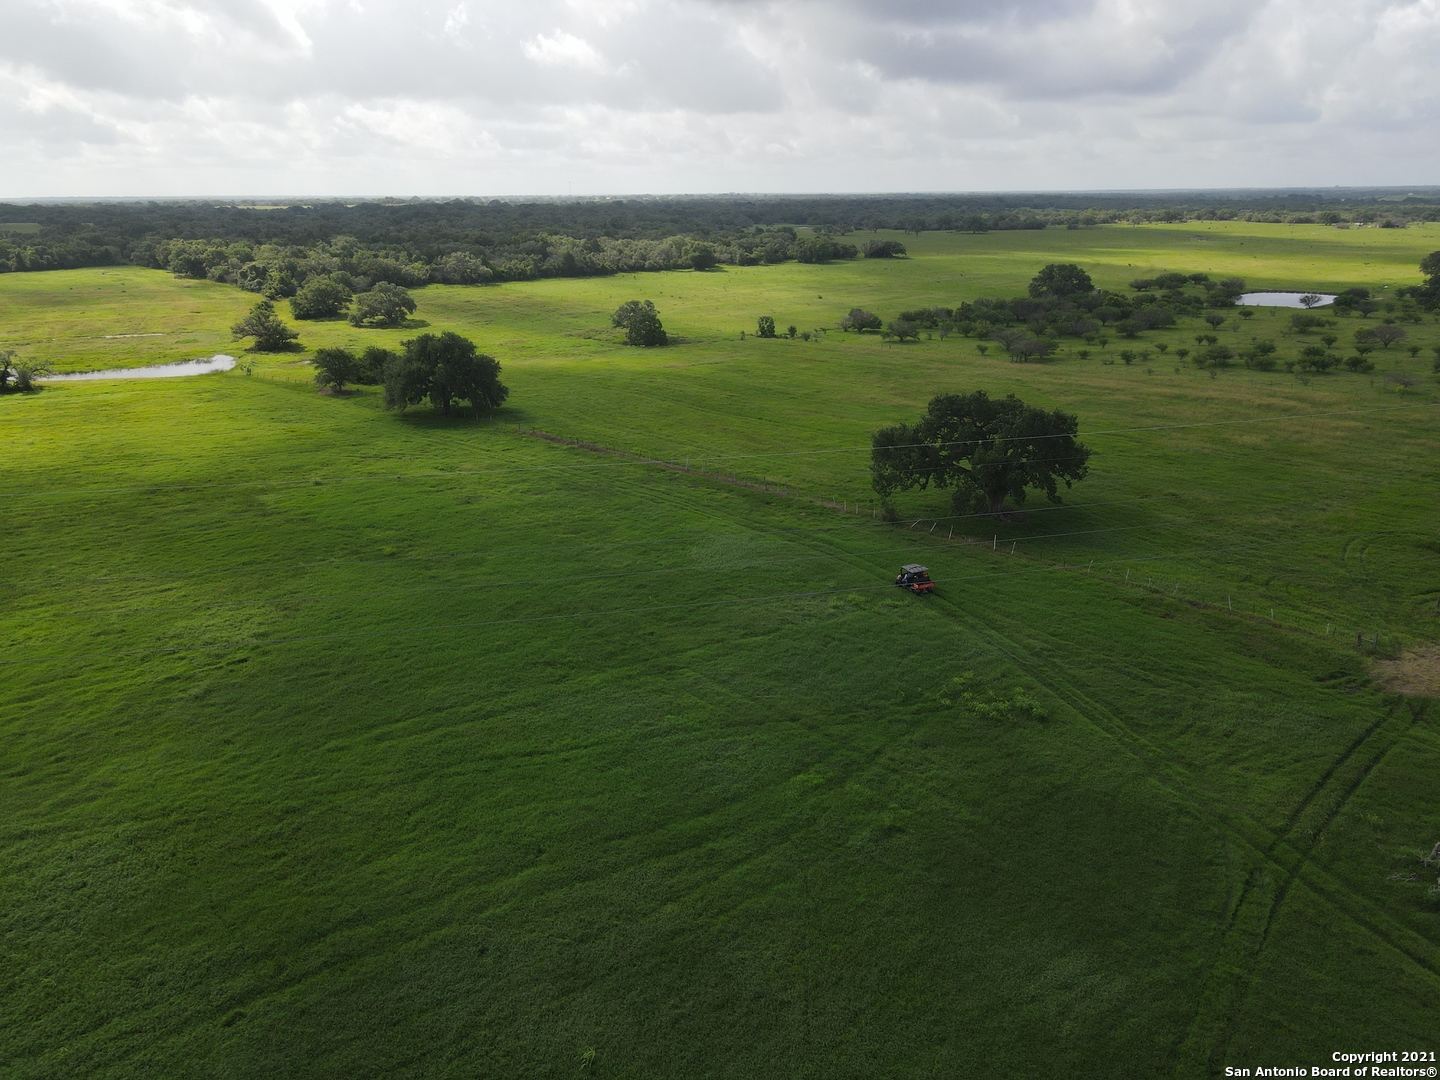 """A 102 acre sportsman & rancher's paradise! This property has CD 90160 Hybrid Bermuda grass - a hybrid grass developed by Texas A&M as a specialty grazing, baling, and pasture grass. You will NOT find another property better maintained, fertilized, brush controlled, & weed controlled. This amazing acreage has beautiful HUGE oaks and pecans throughout. There is an amazing pond - perfect for fishing, wildlife & livestock. There is an abundance of deer, wild turkey & other beautiful wildlife. There is a new (2020) metal building with 50x50 insulated shop area equipped with three 14x14 electric sectional rollup doors. Attached is additional roof area making the building 11,250 sqft of under roof space!  This property has a 2 bedroom, 1.5 bath older home with a great covered carport & covered porch area - perfect for weekends! There is a great separate 20x42 metal building, which is a perfect """"man cave"""" or deer processing room!   This dream acreage has it ALL - one you CANNOT pass up!!"""